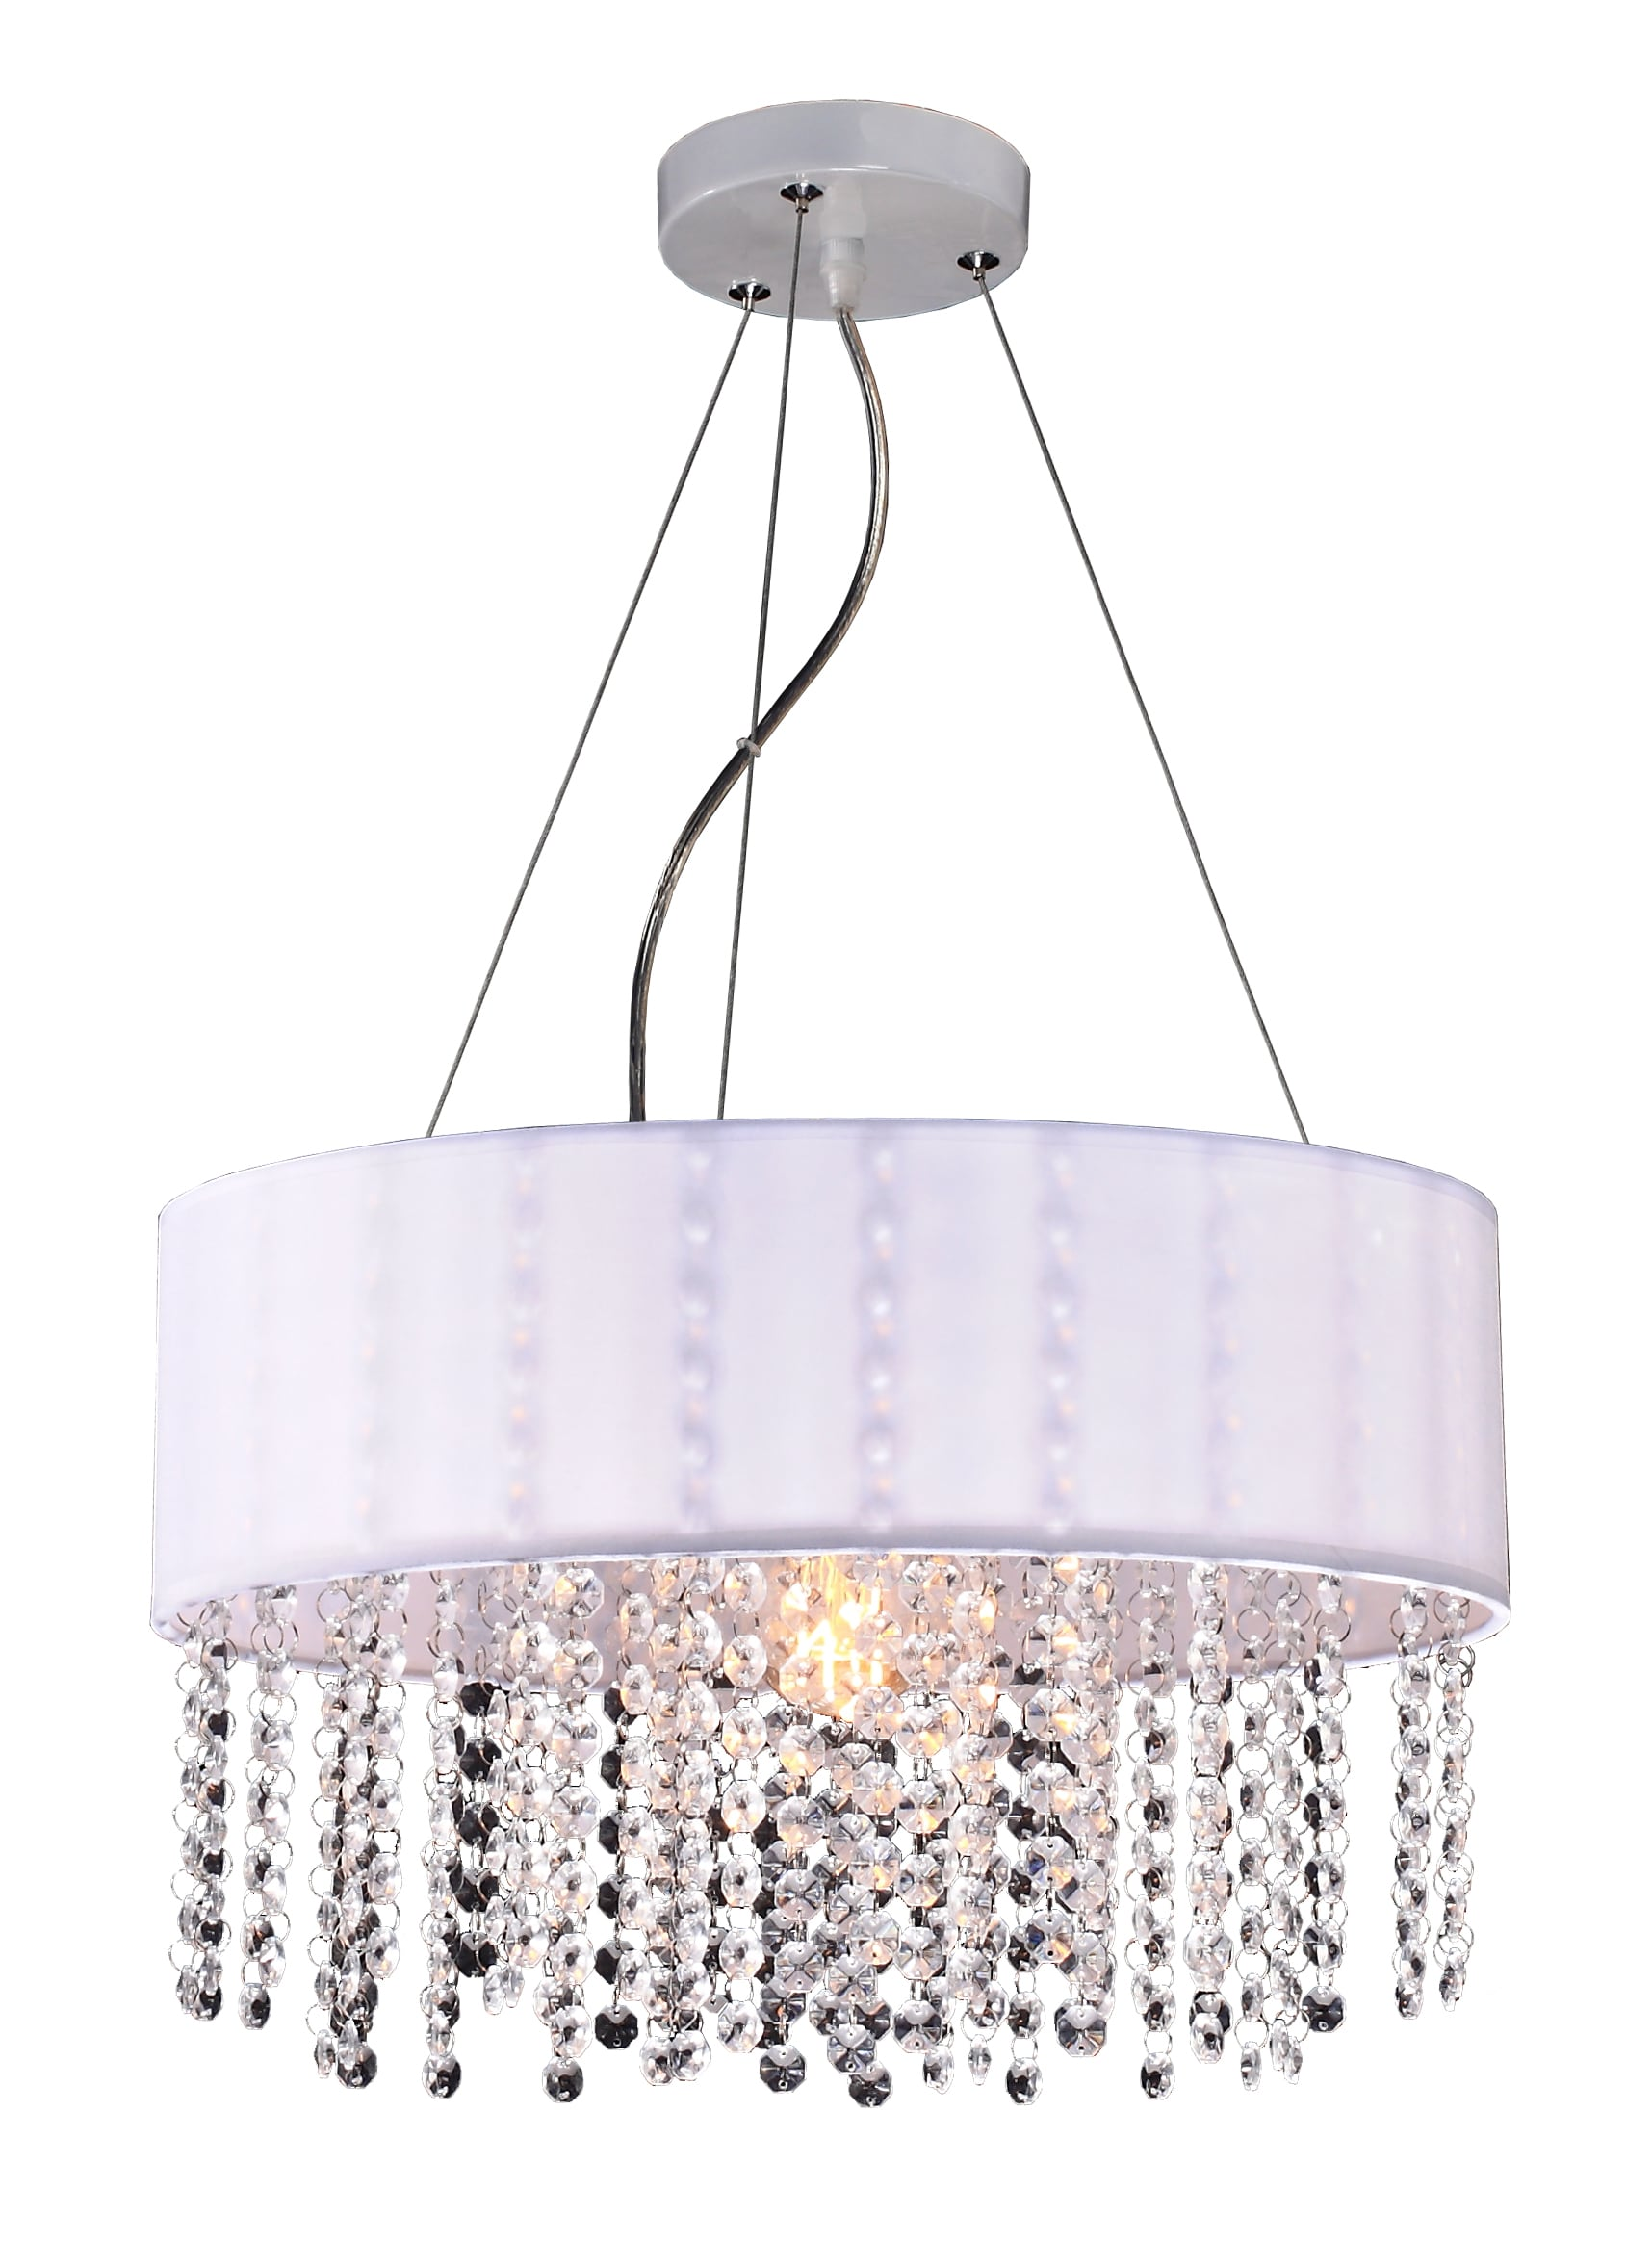 Madrid lamp hanging white Glamor diamonds